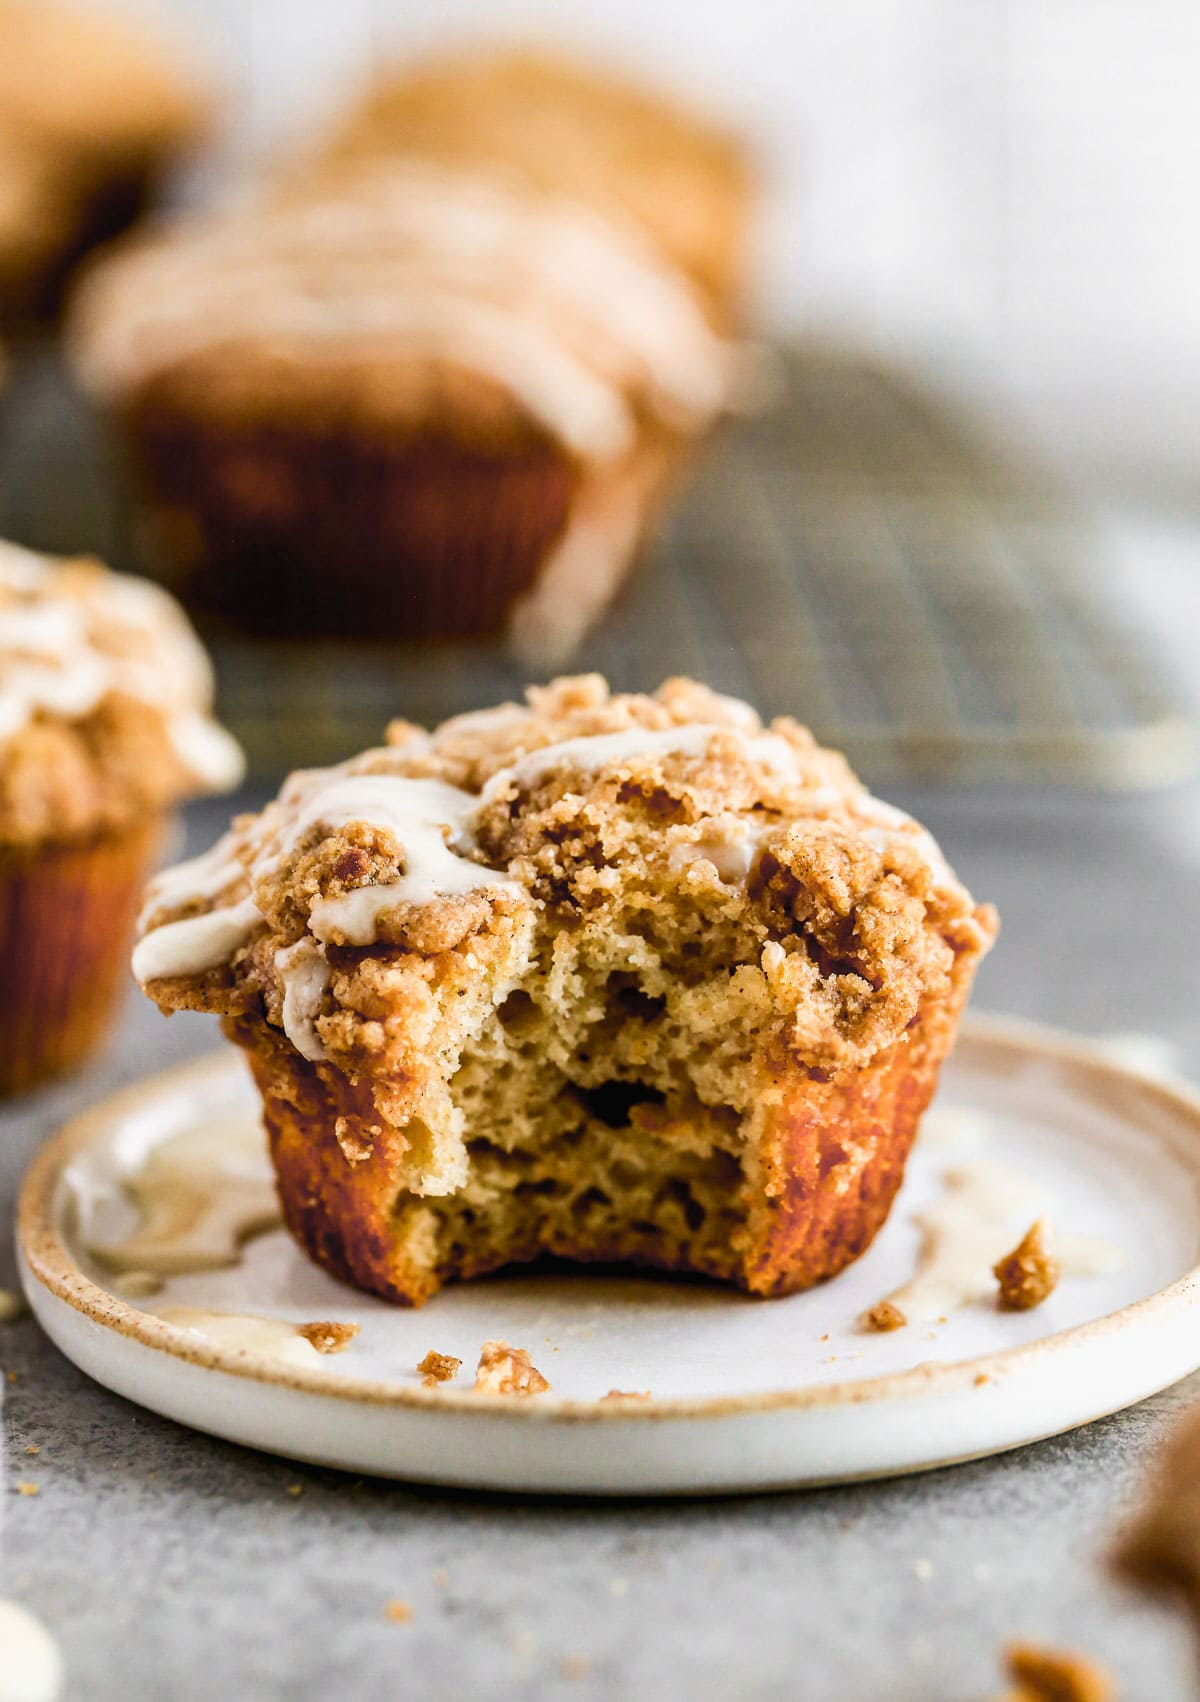 A coffee cake muffin with a bite missing